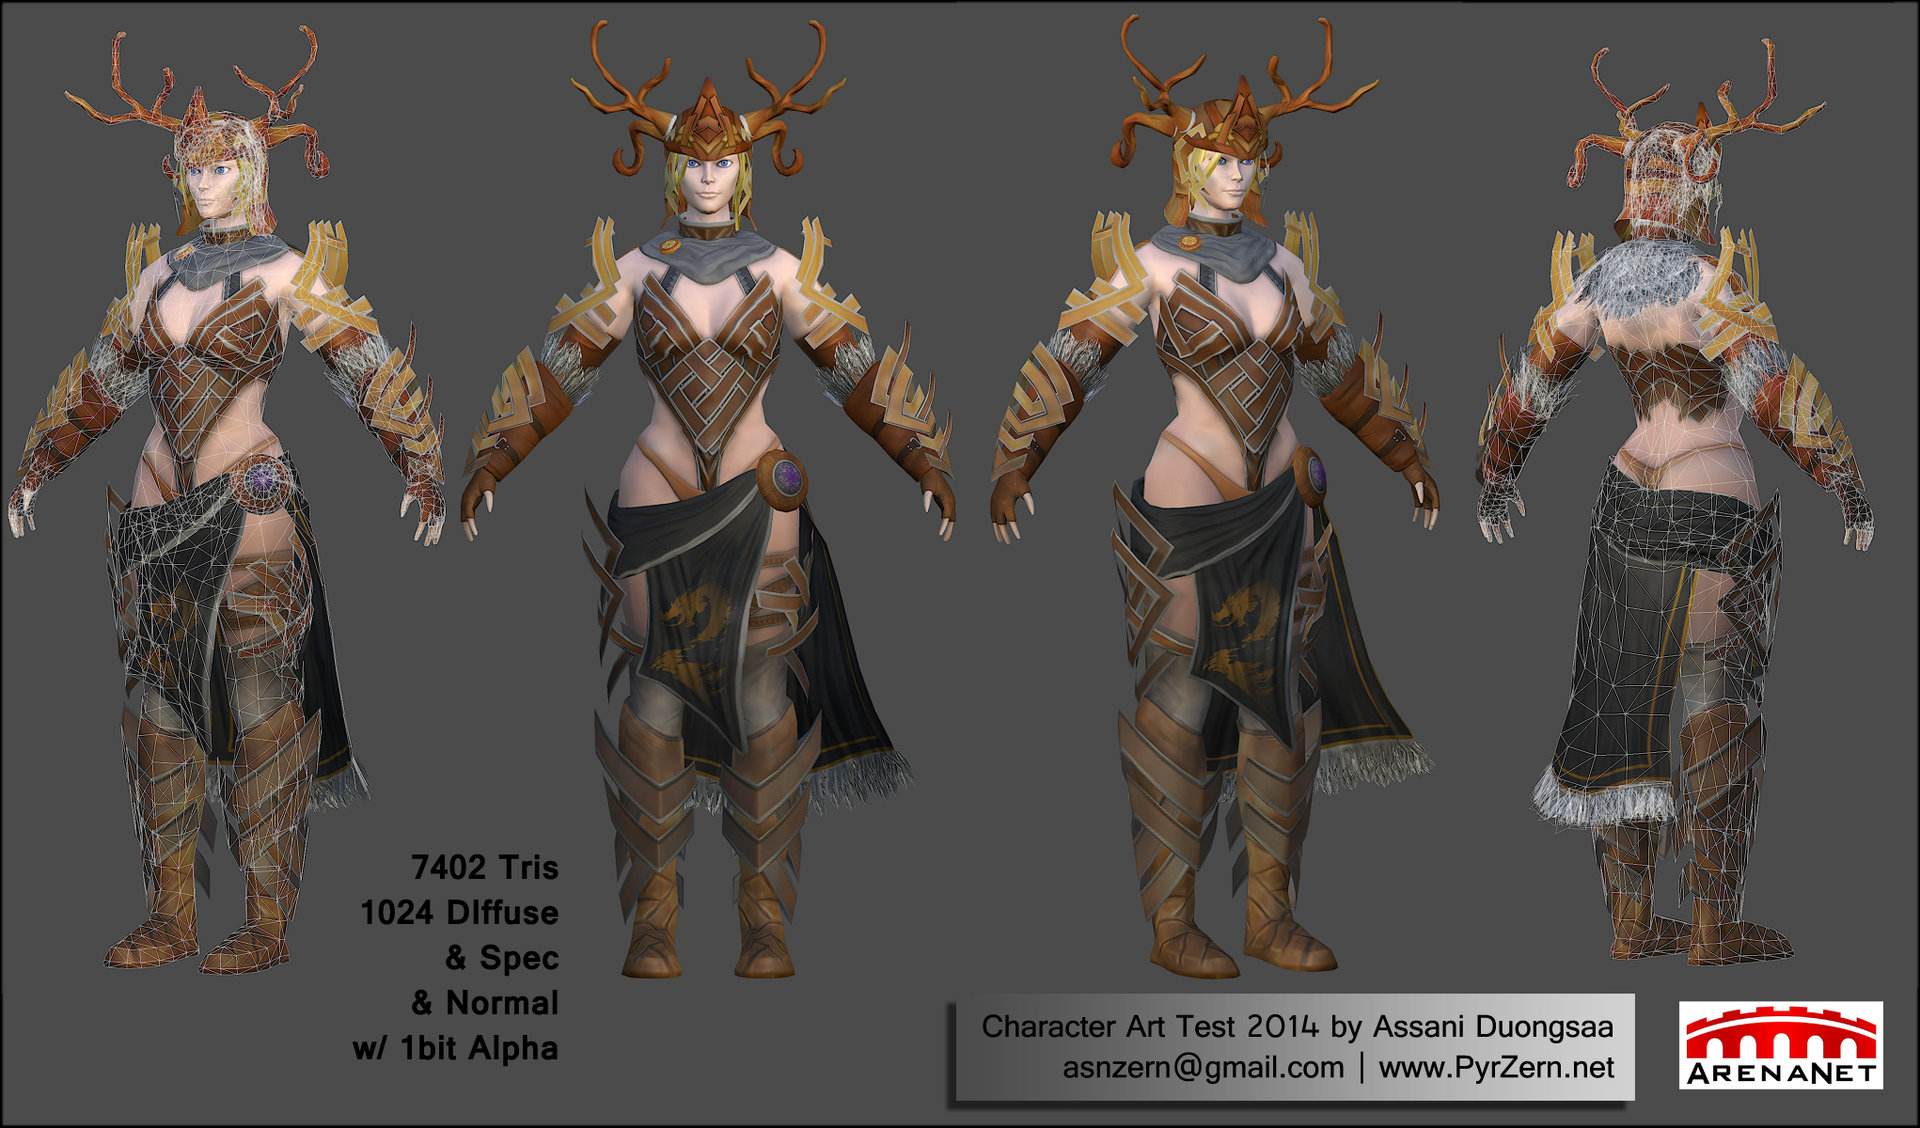 Character art test 2014 assani duongsaa   01